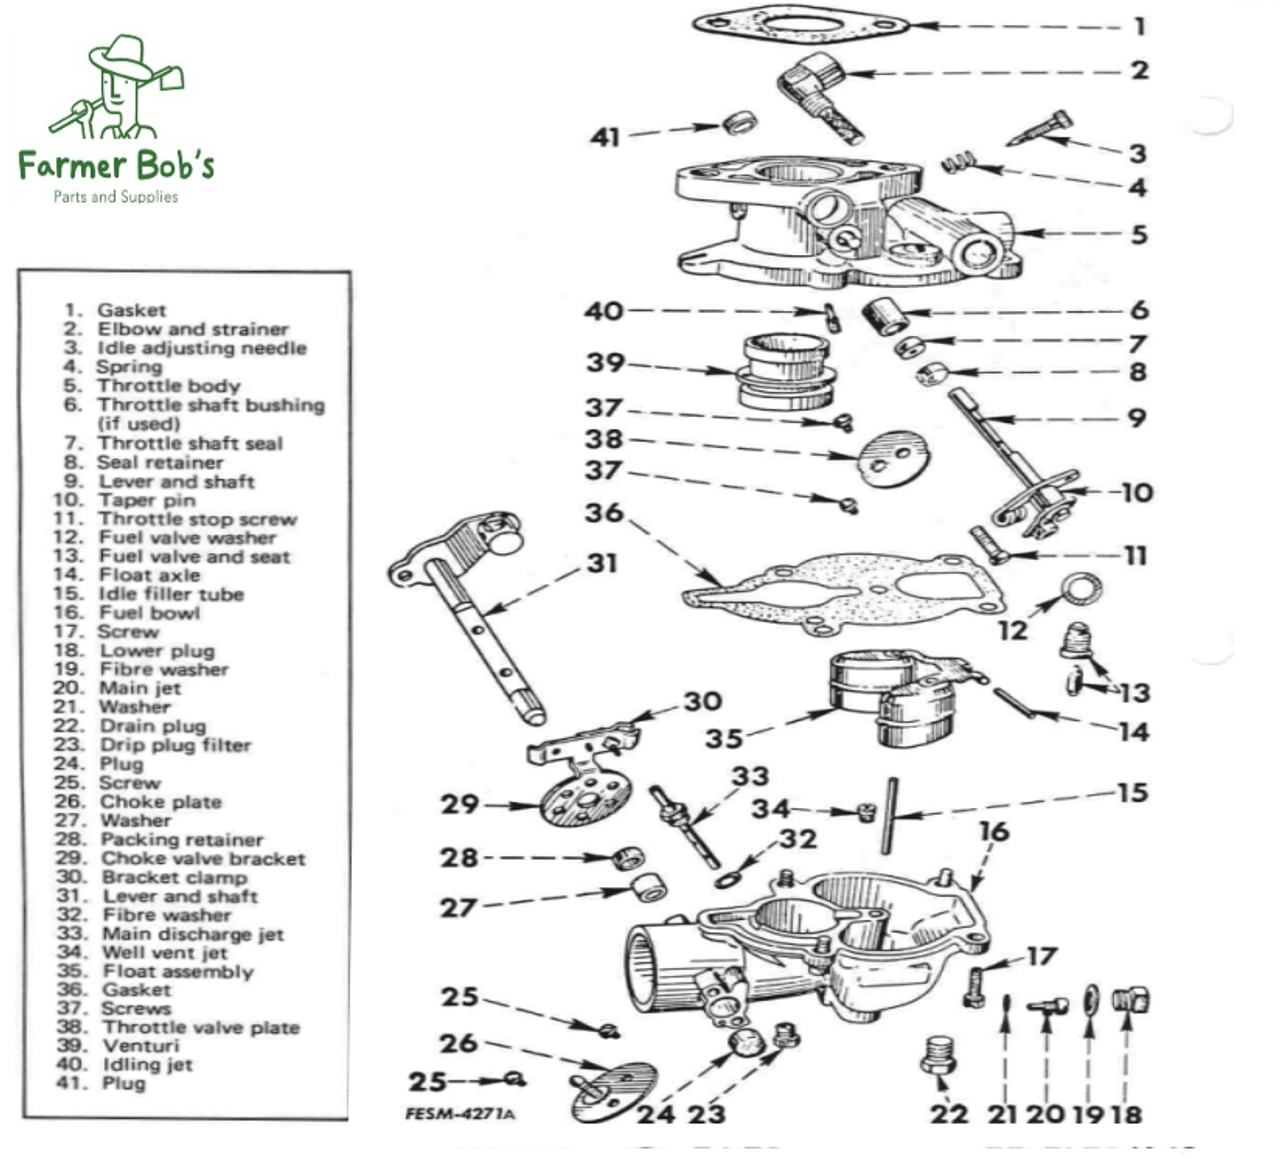 27 Farmall M Wiring Diagram